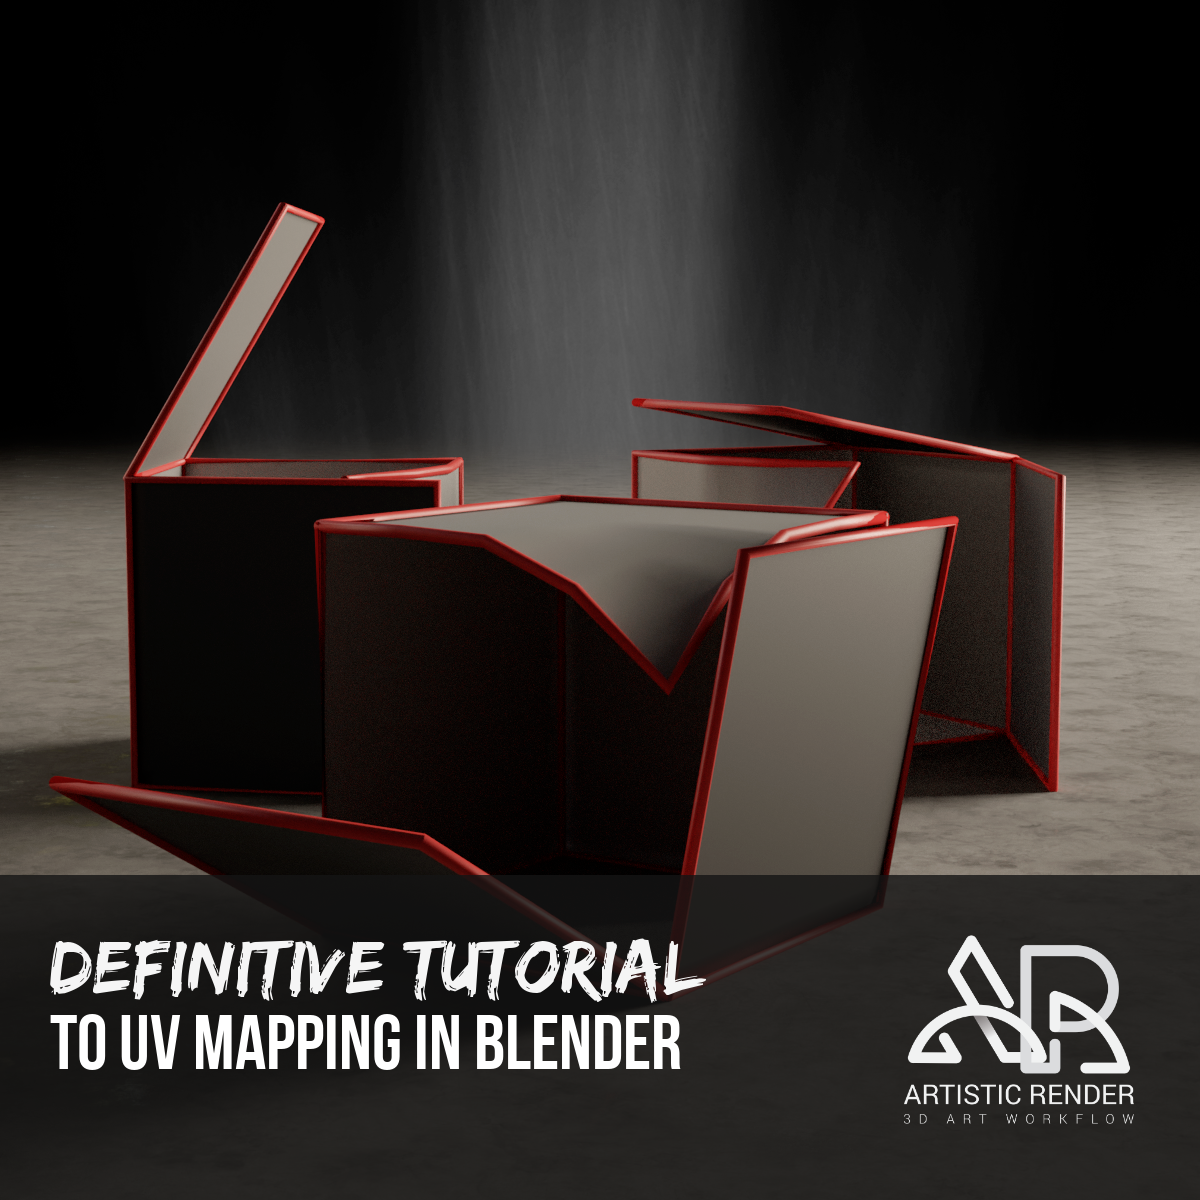 The definitive tutorial to UV mapping in Blender | Artisticrender com